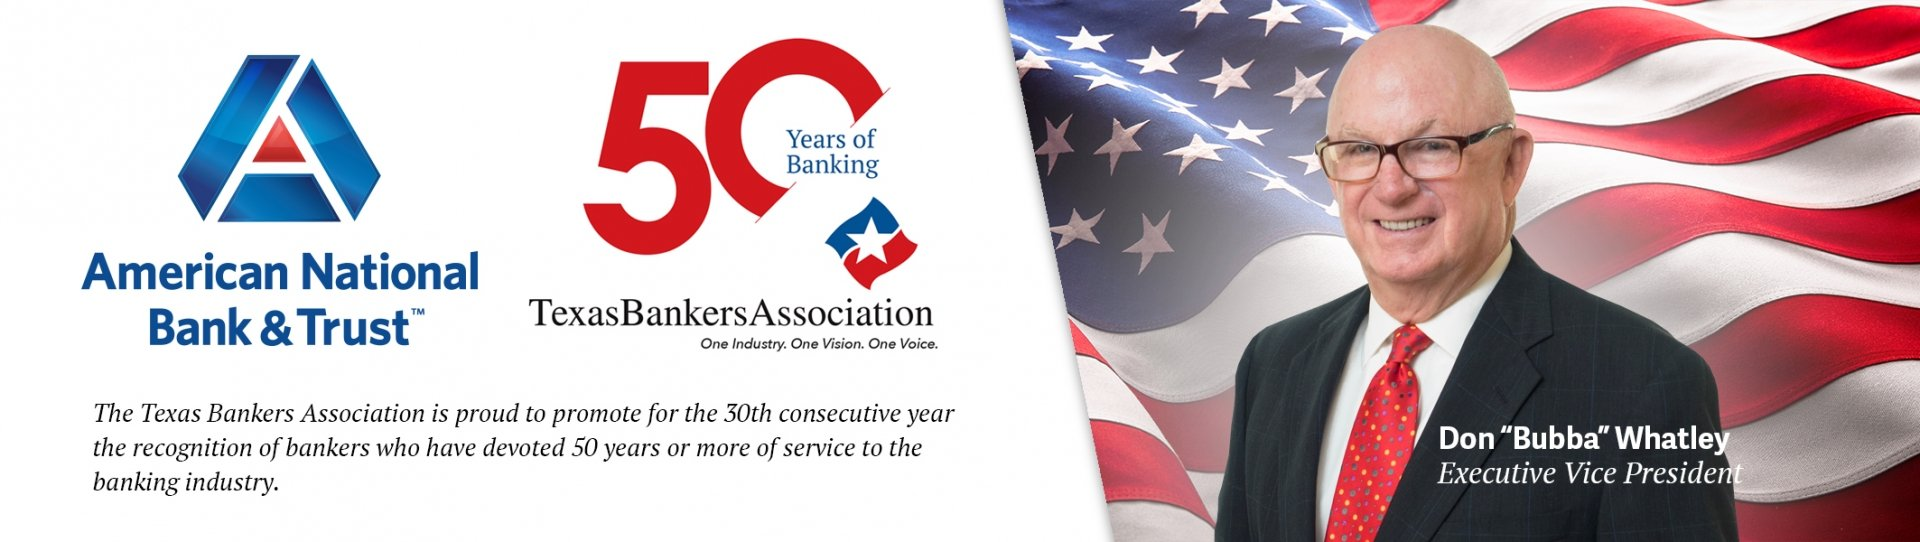 50 Years of Banking